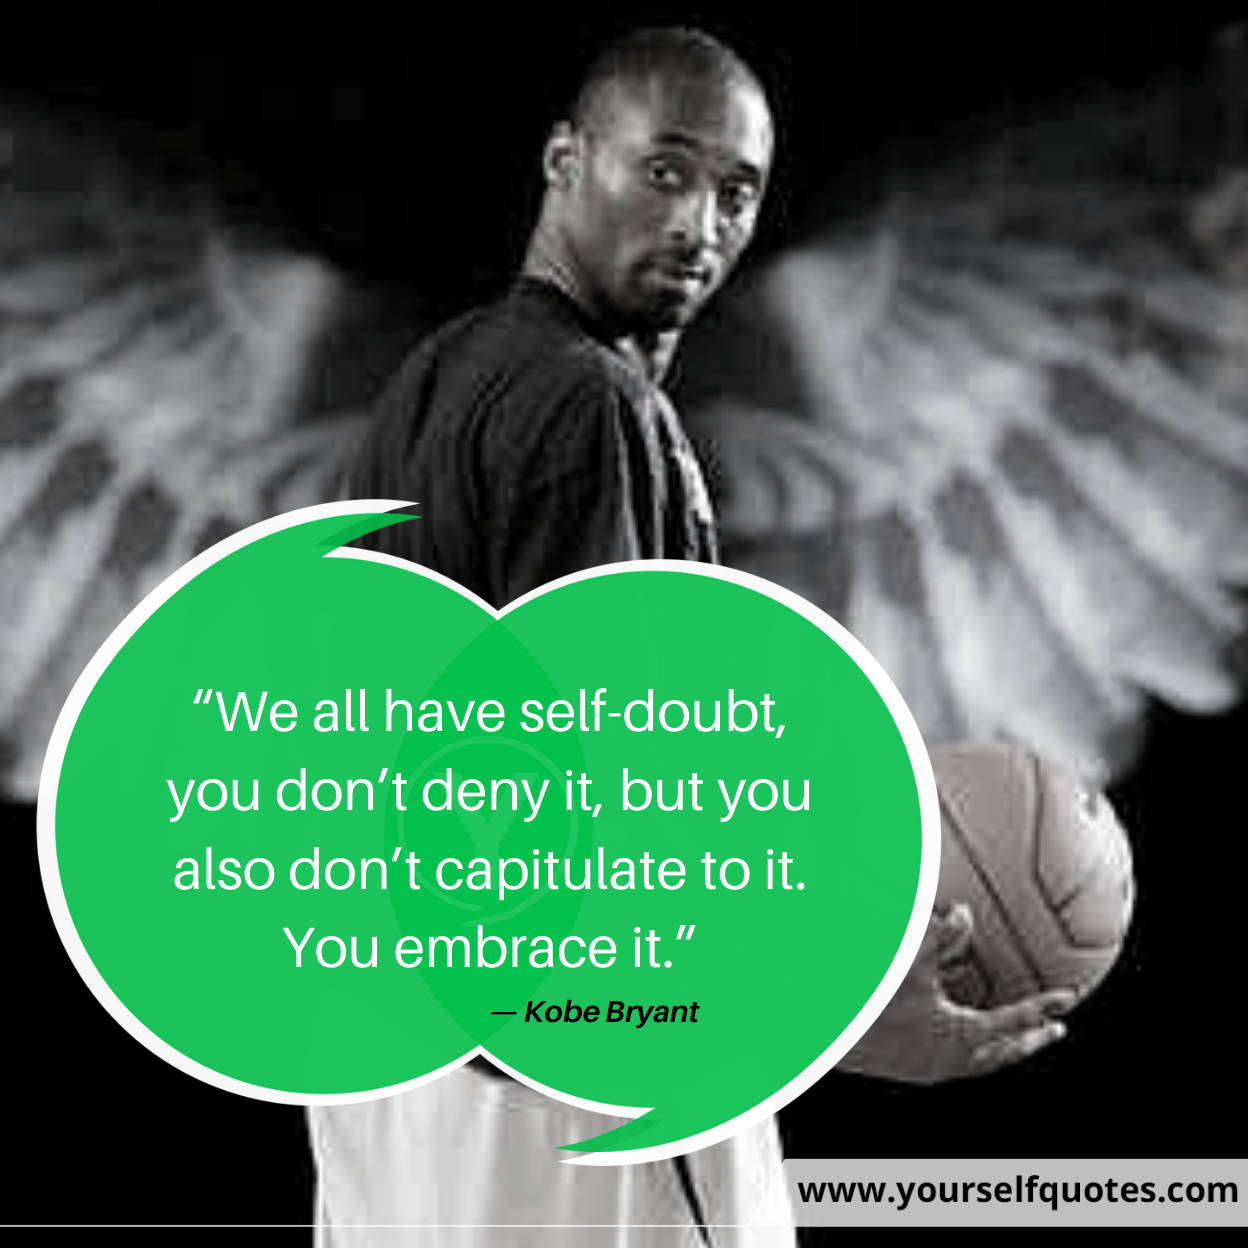 Quote Kobe Bryant Images